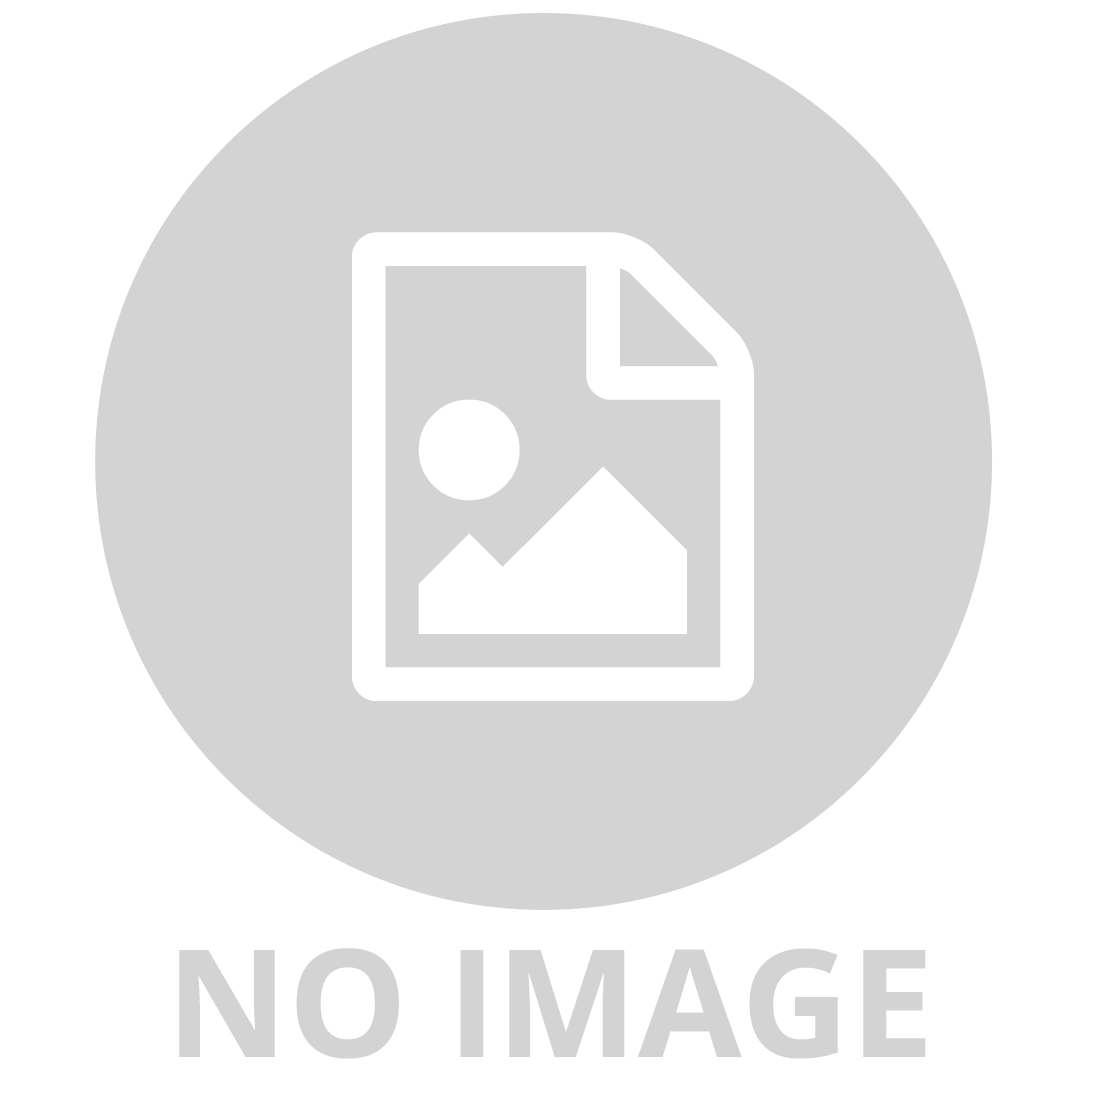 STRETCH ARMSTRONG FETCH ARMSTRONG DOG